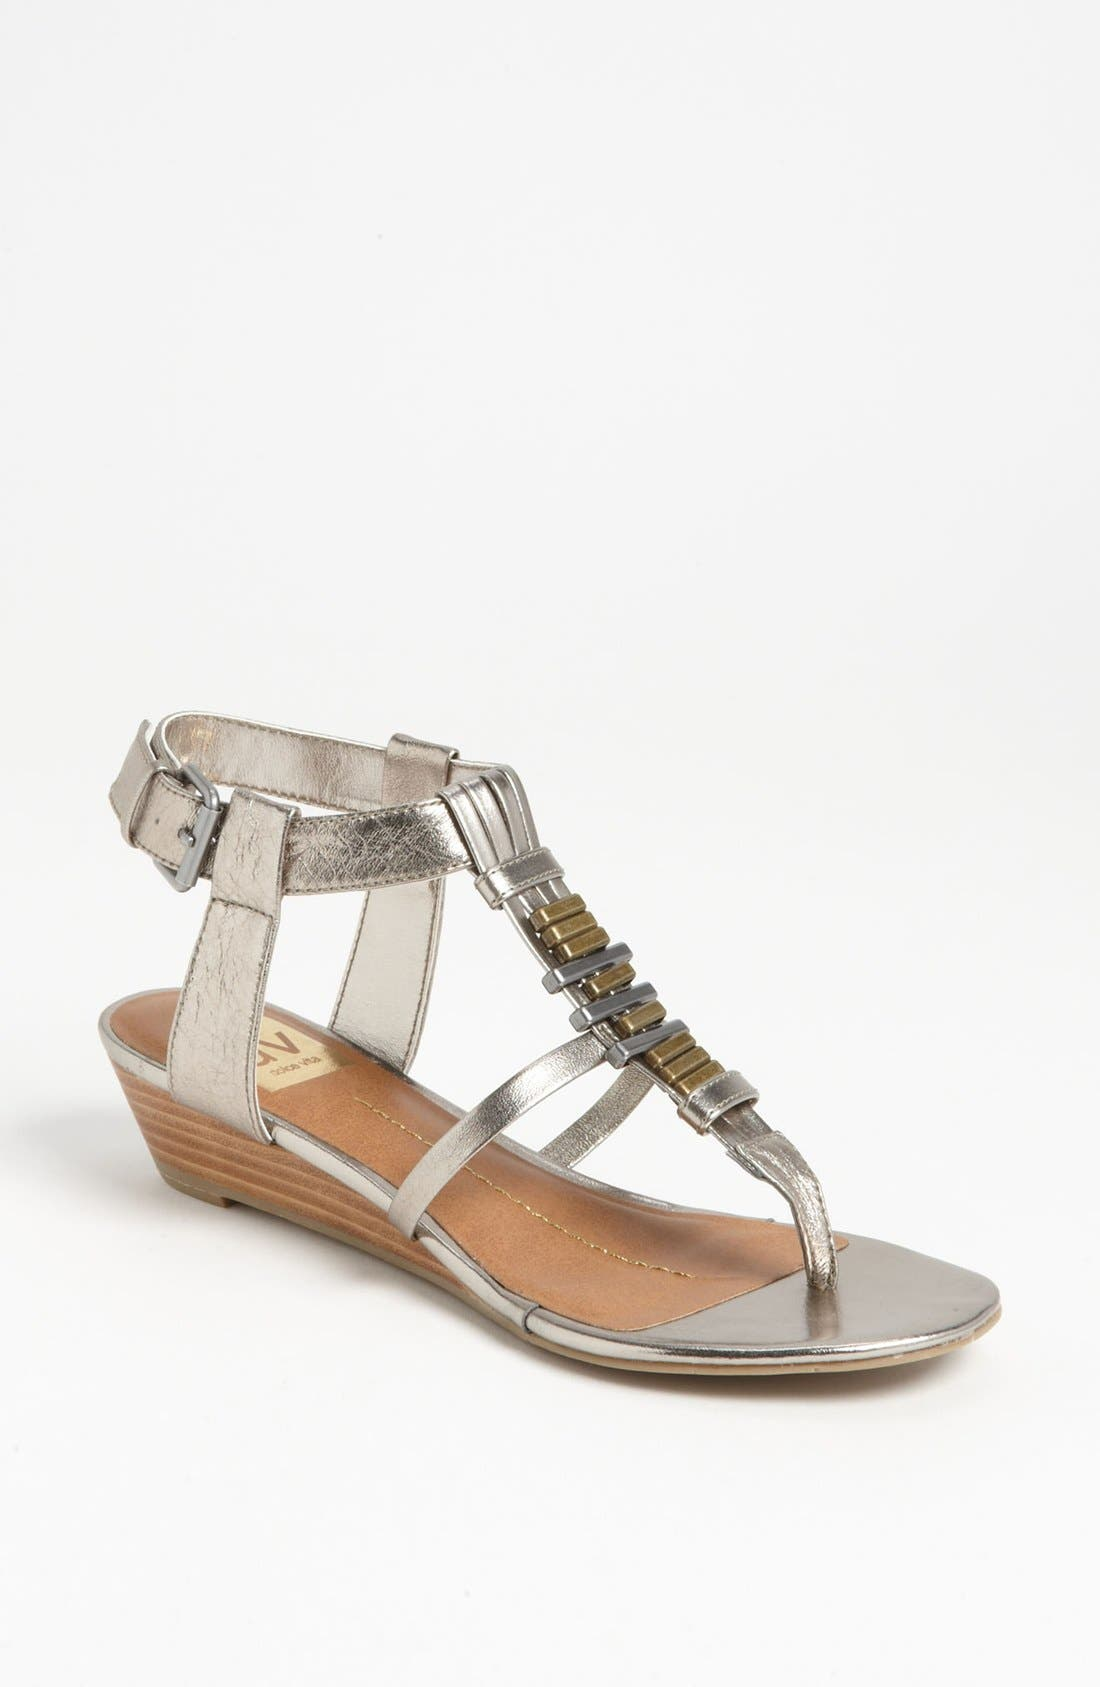 Main Image - DV by Dolce Vita 'Faline' Sandal (Online Only)